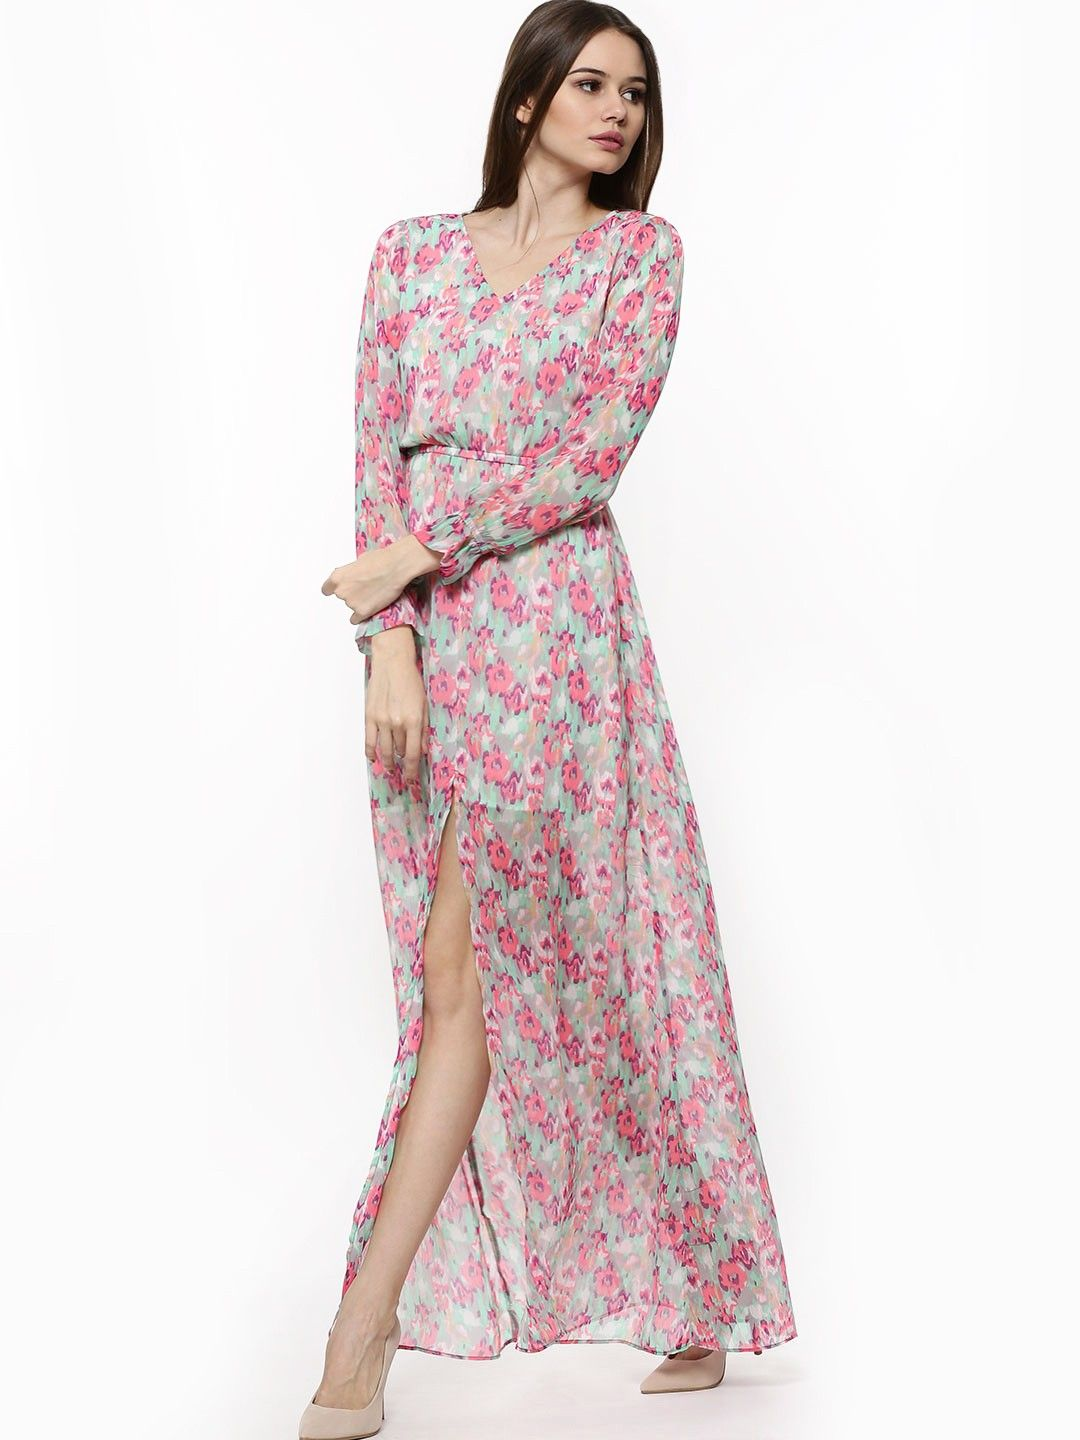 d12ab82a858 KOOVS Printed Neon Floral Maxi Dress - Buy Women s Maxi Dresses online in  India